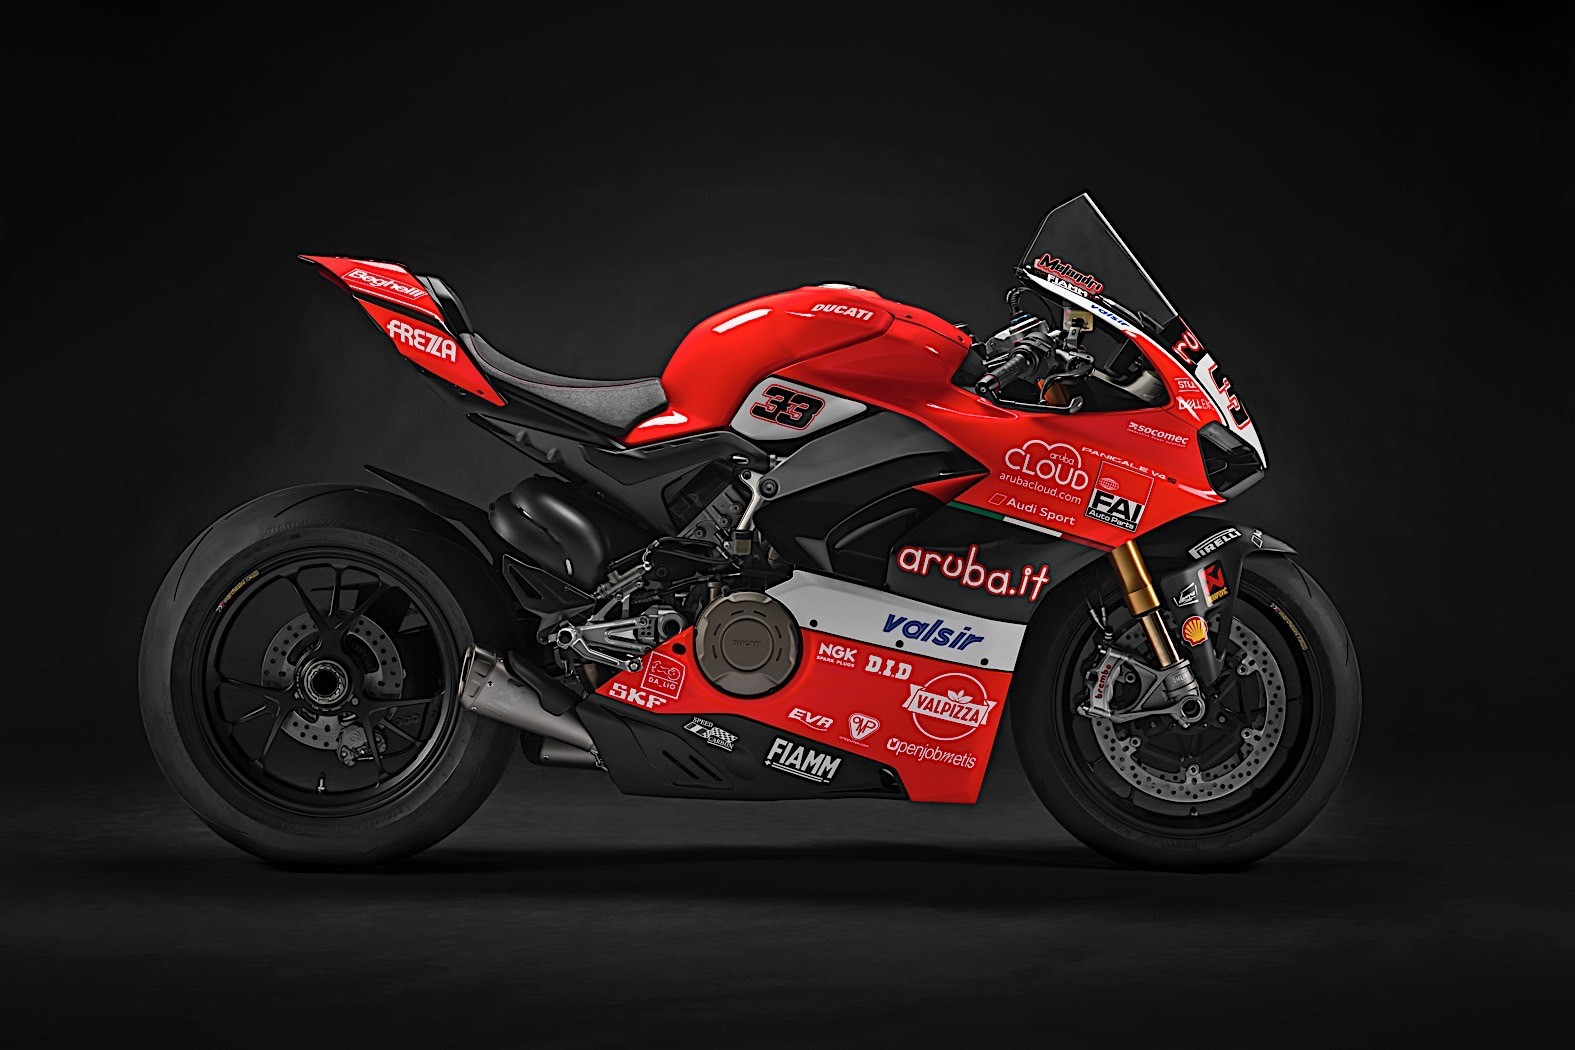 unique ducati panigale v4s motorcycles to sell on ebay after race of champions autoevolution. Black Bedroom Furniture Sets. Home Design Ideas